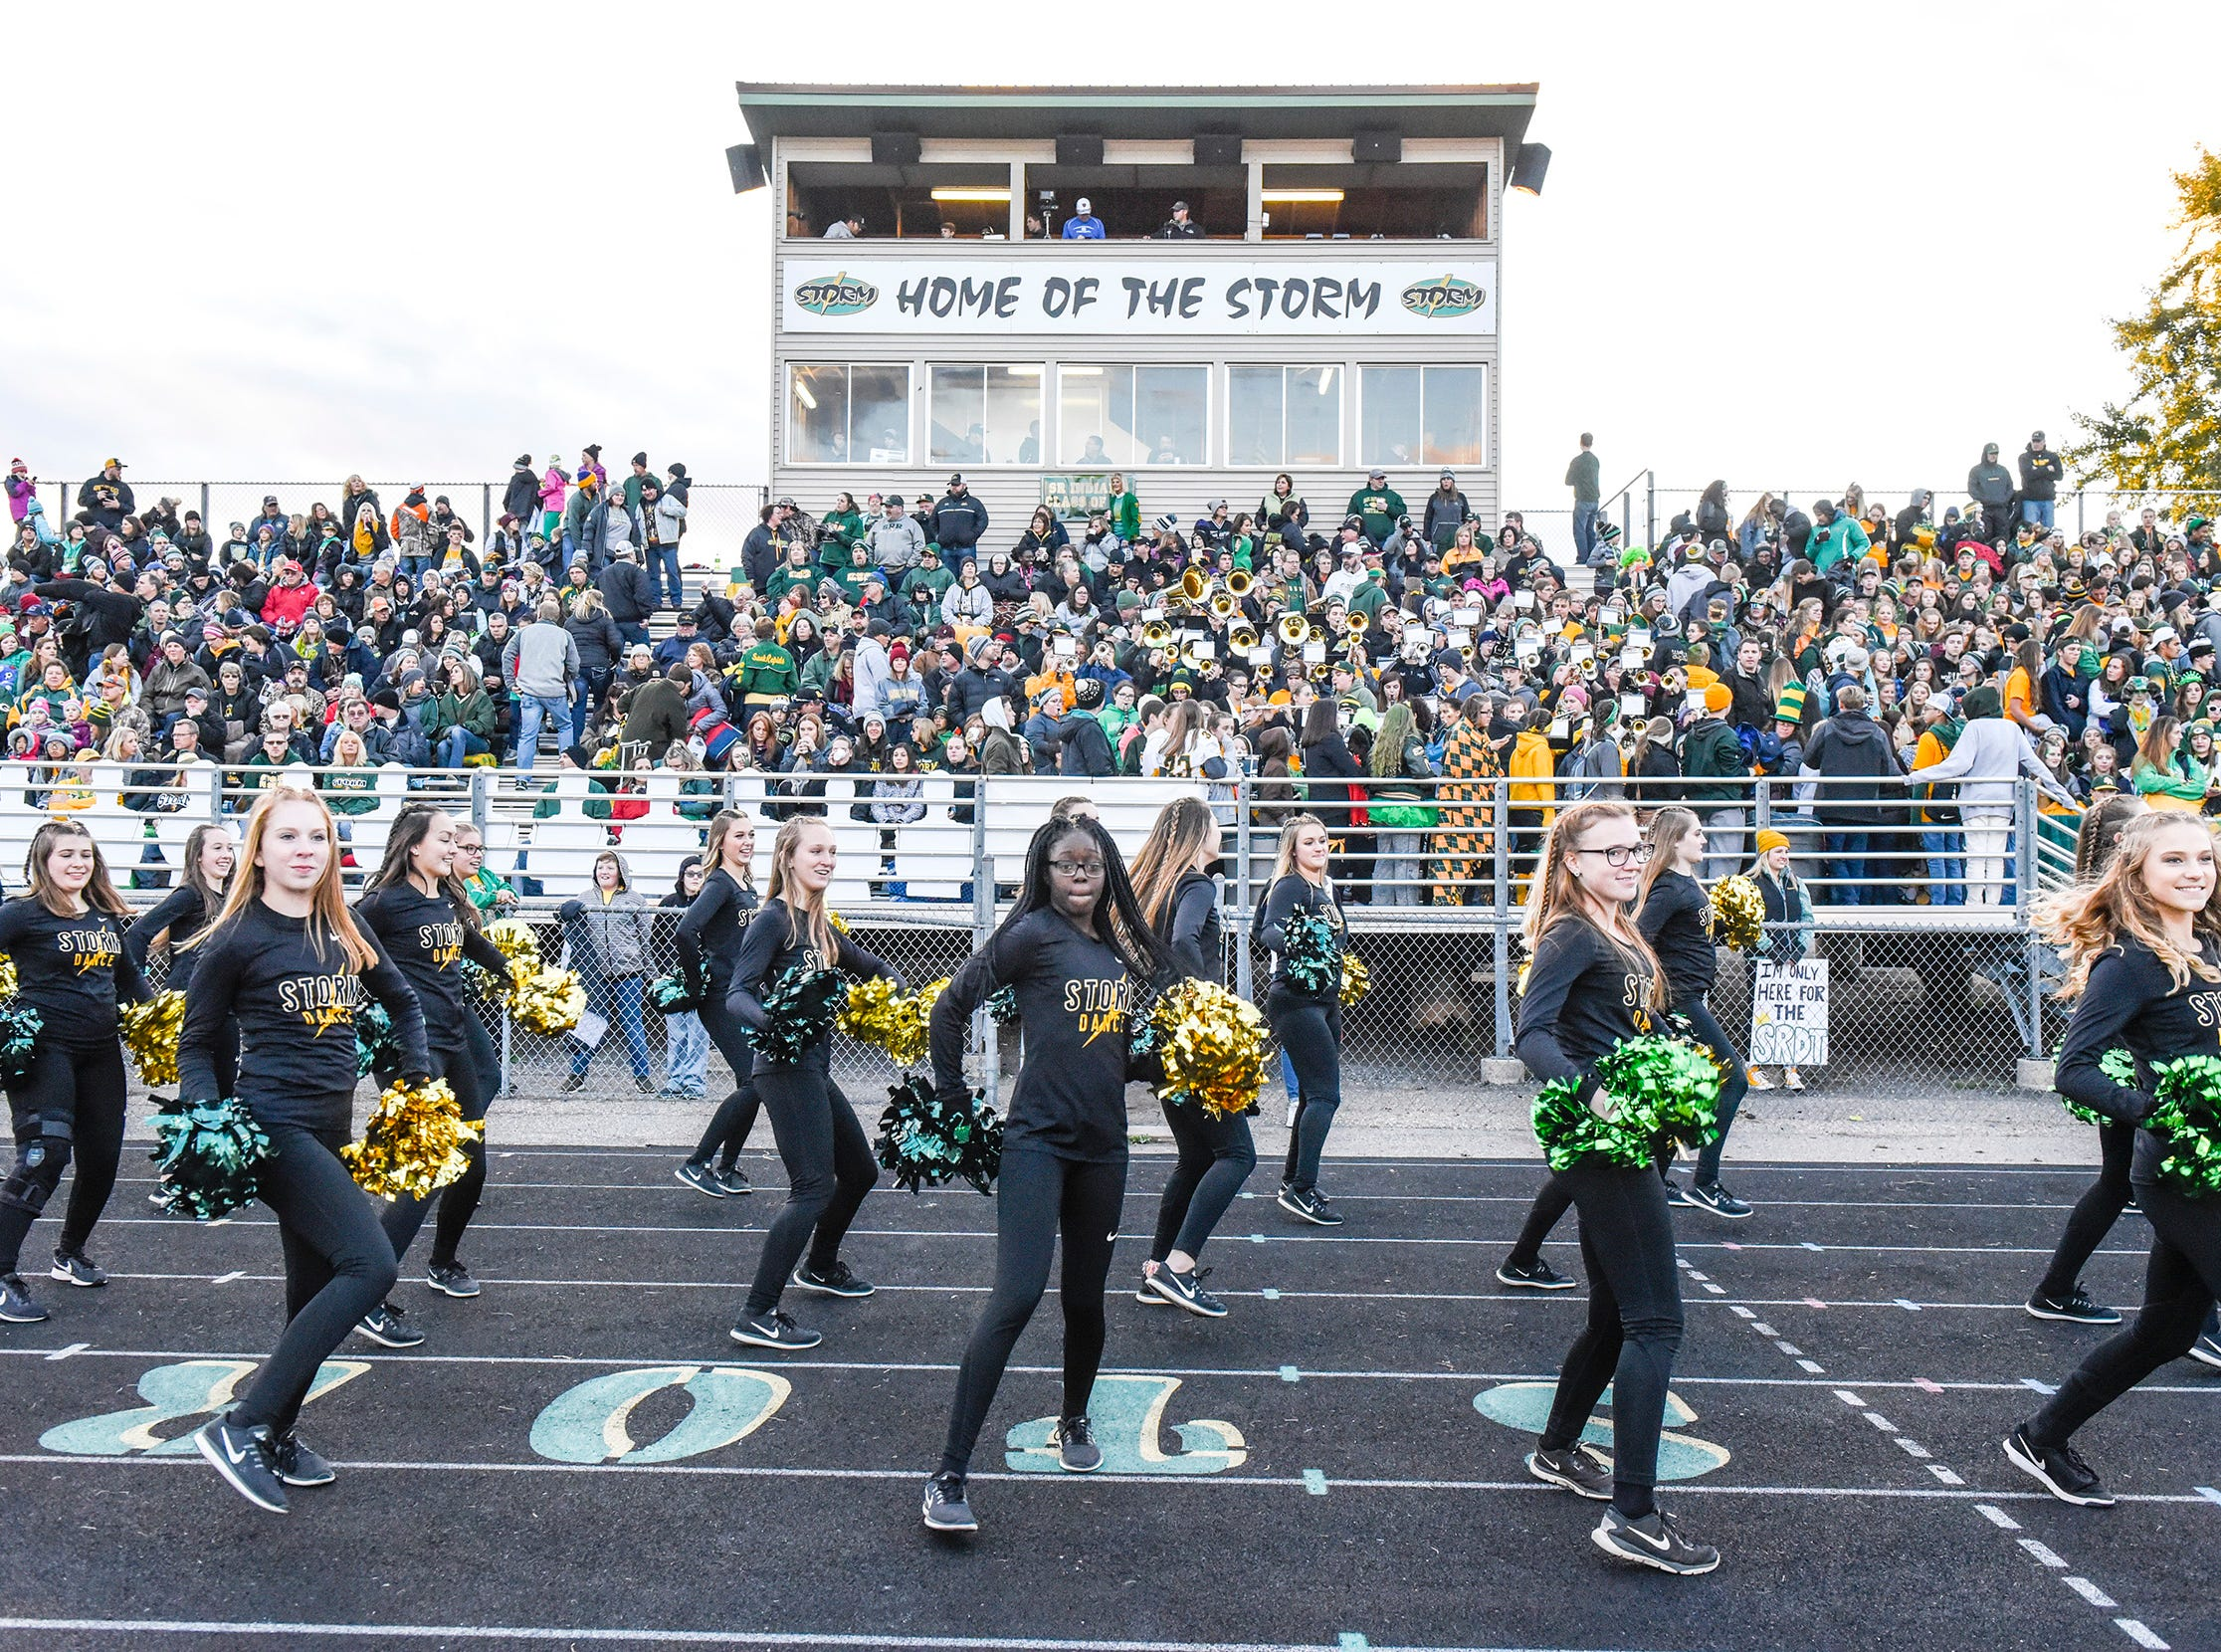 The Sauk Rapids pep band and cheerleaders entertains the fans before the start of the game.